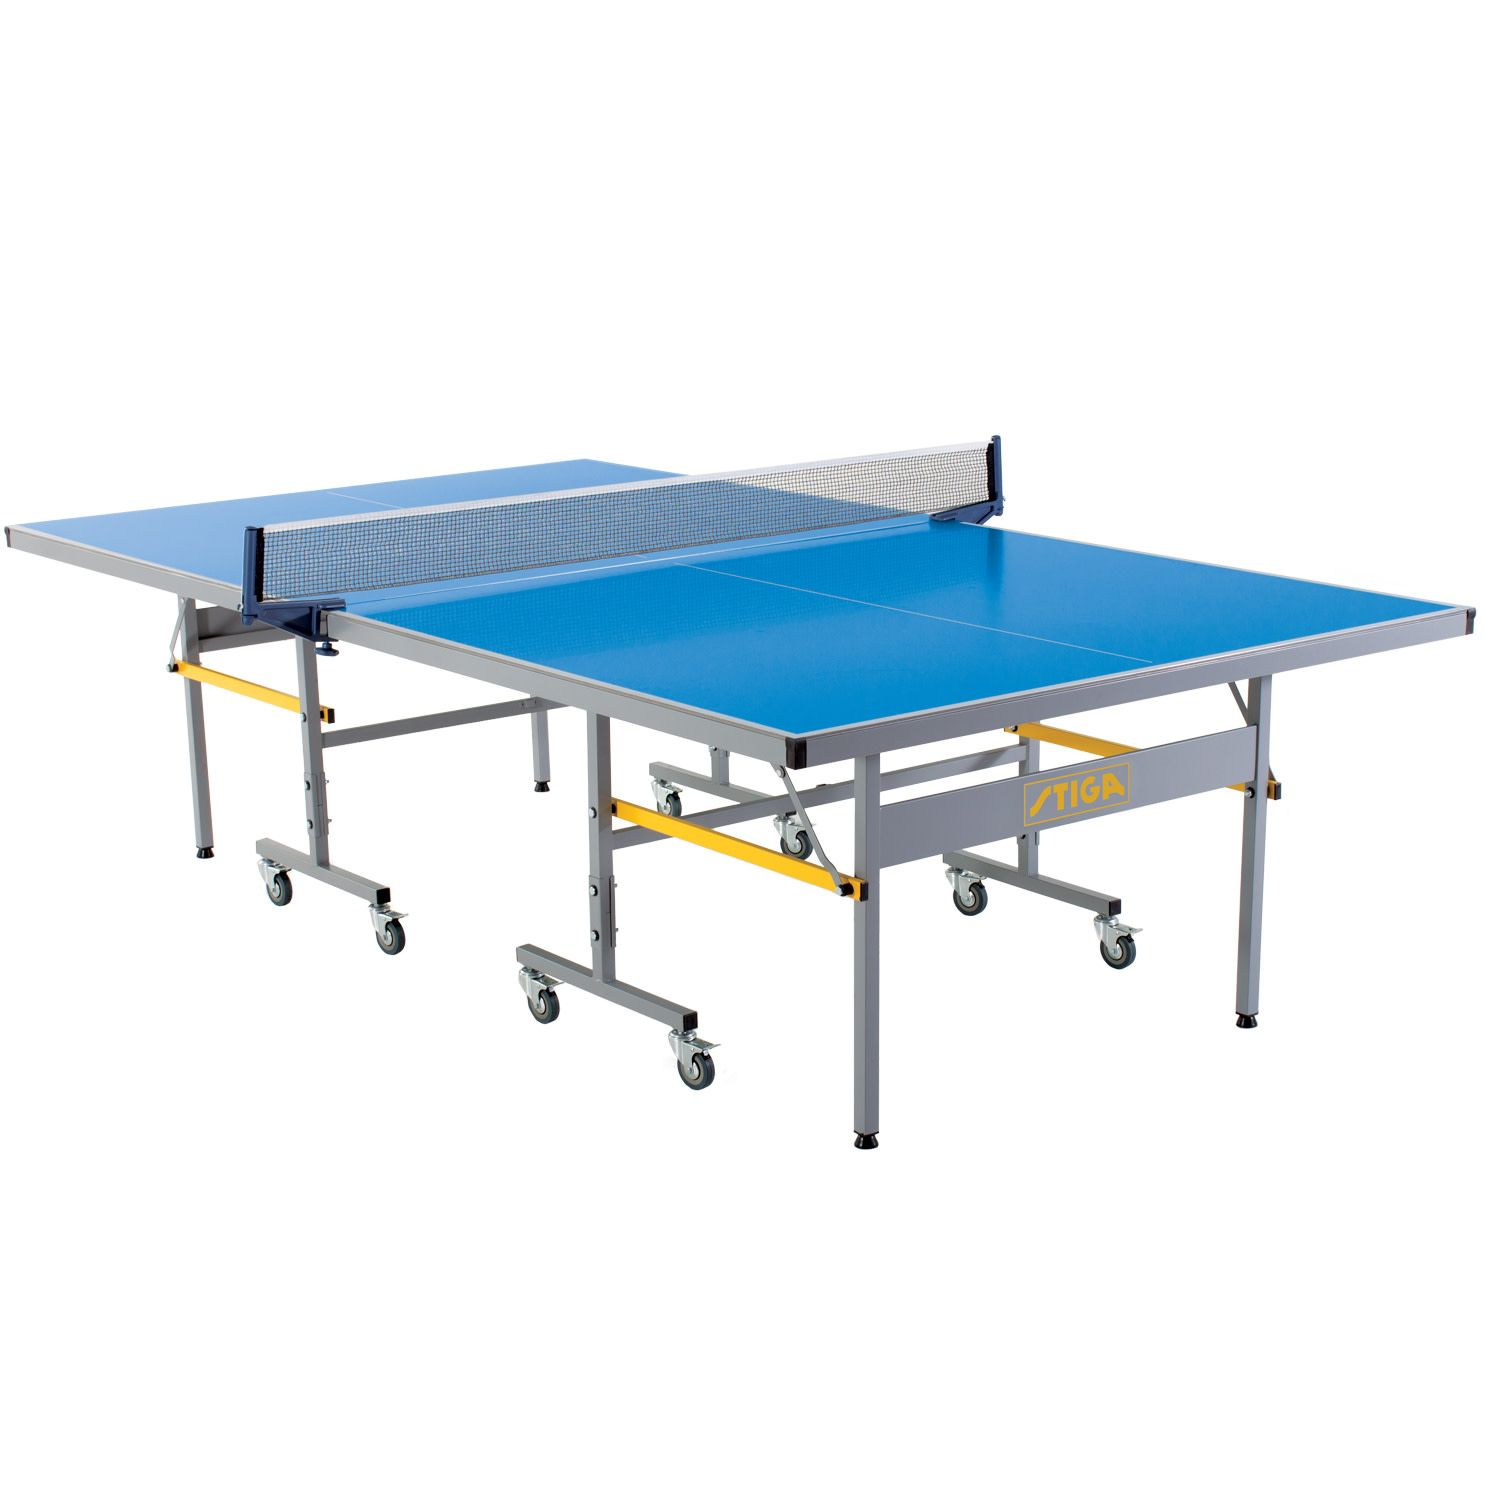 Free 2 Day Shipping Buy Stiga Vapor Indoor Outdoor Table Tennis Table With Quickplay Desi In 2021 Outdoor Table Tennis Outdoor Table Tennis Table Best Ping Pong Table Indoor outdoor ping pong table